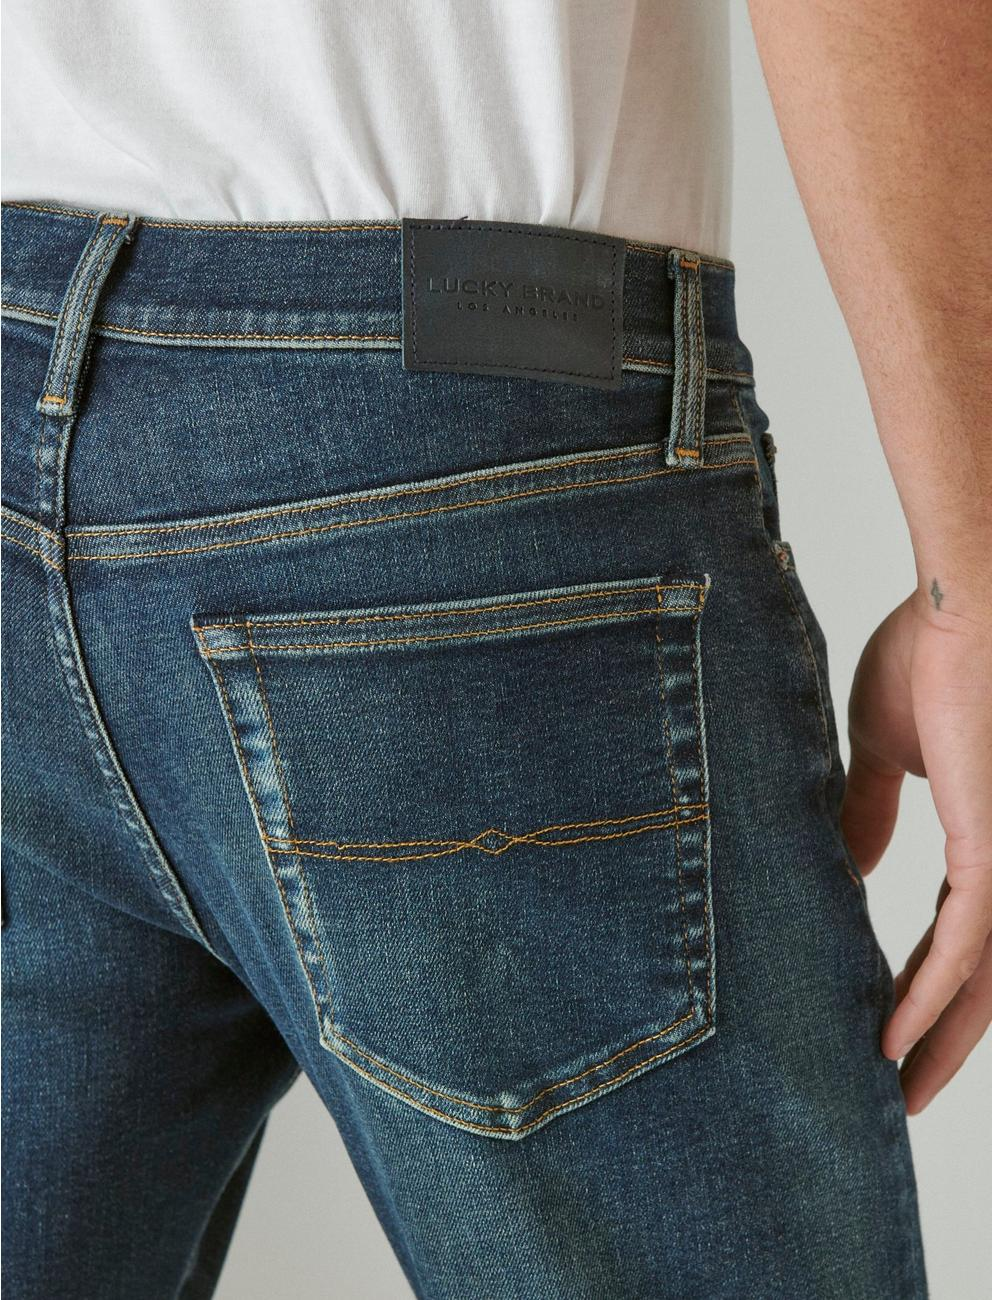 121 SLIM STRAIGHT ADVANCED STRETCH JEAN, FEDERAL